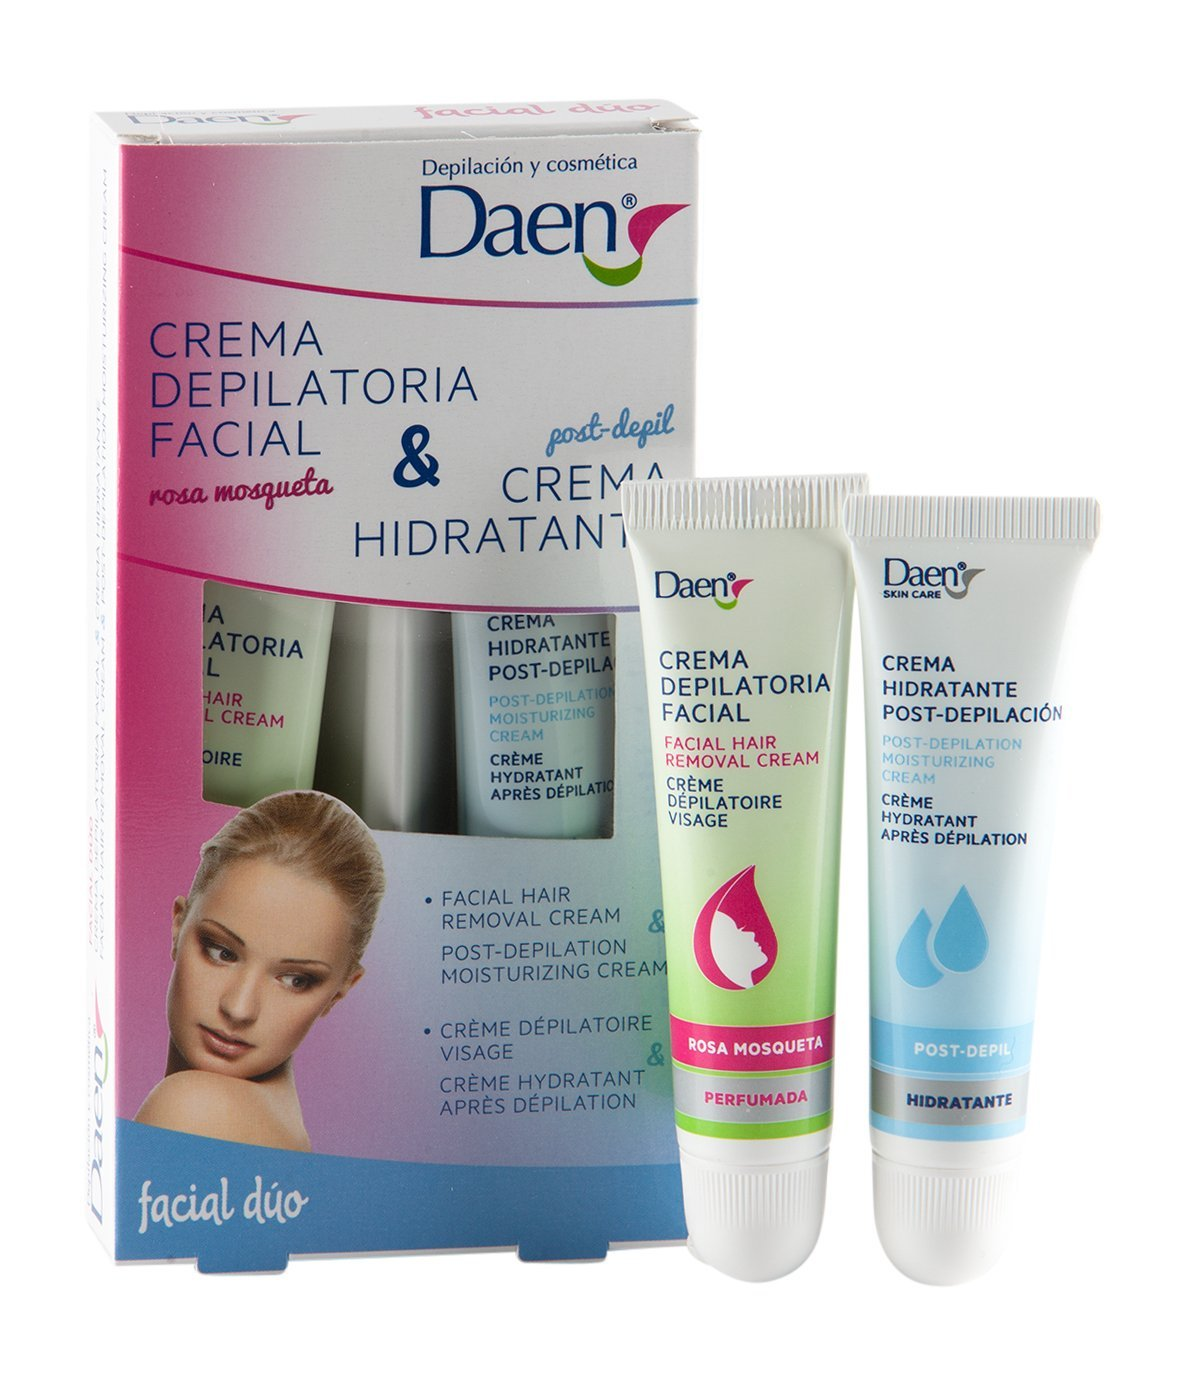 Daen Rosehip Facial Hair Removal and Post Moisturising Cream - by Daen 100534